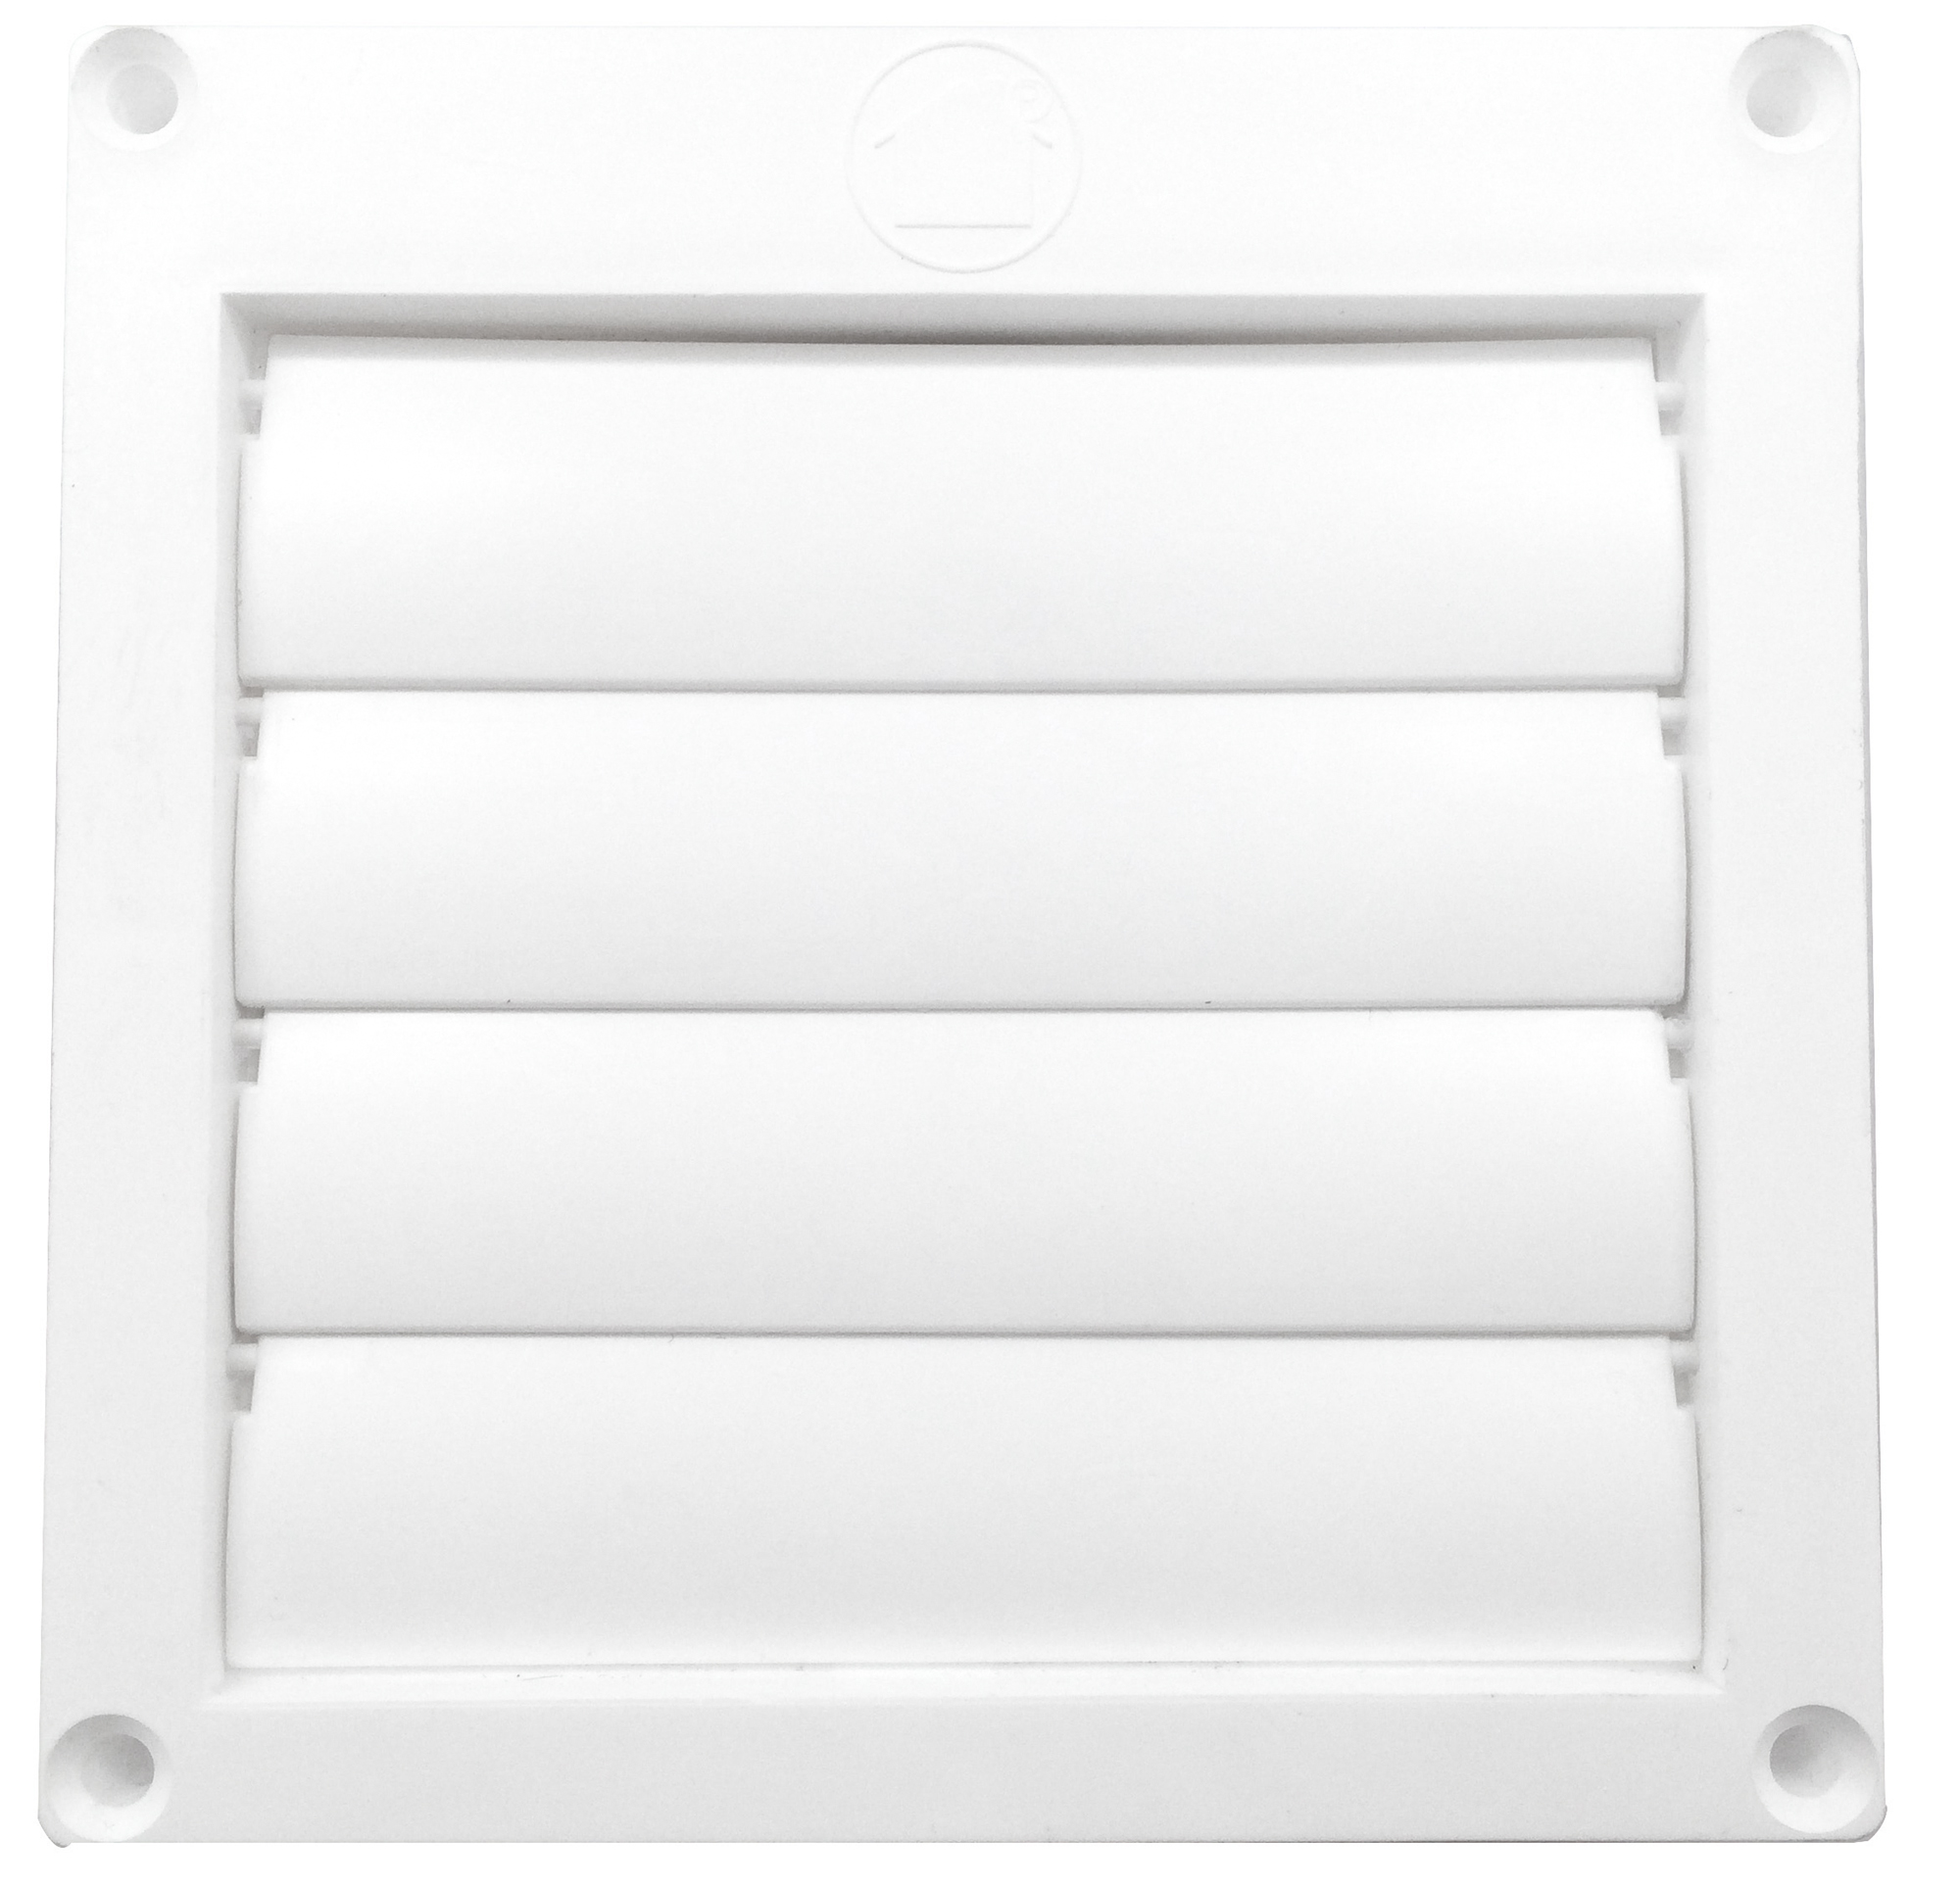 BUILDERS 110282 4-IN DRYER OR BATH LOUVERED VENT WHITE